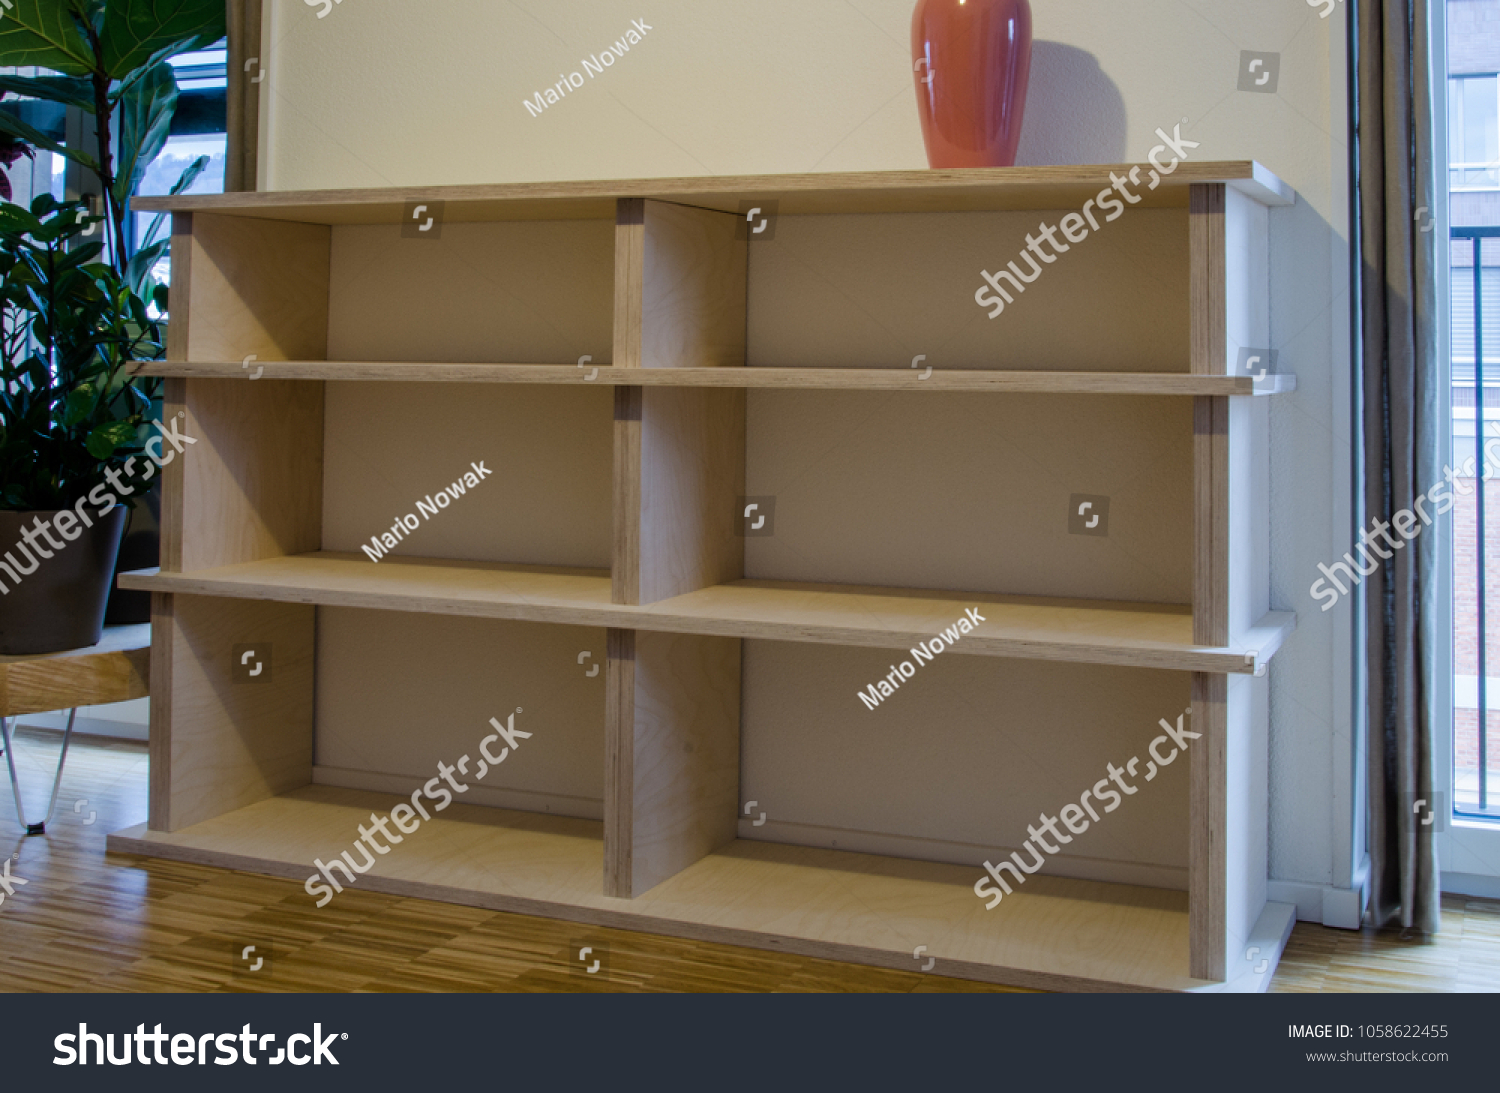 Empty Bookshelf Made Of Wood In Flat At Home